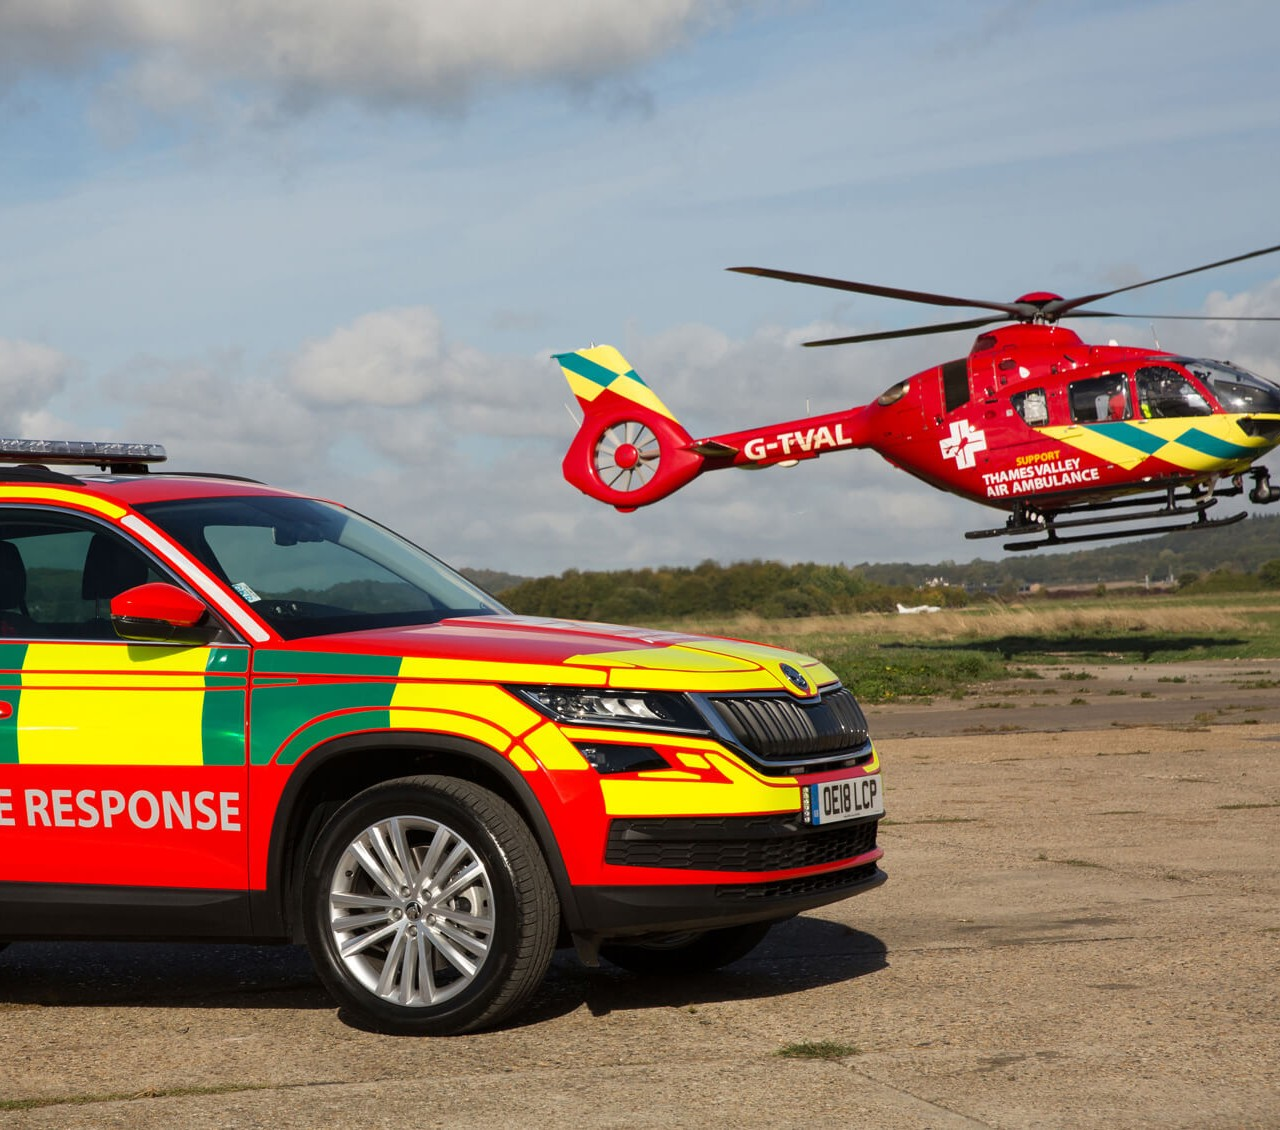 critical care response car and helicopter at Benson